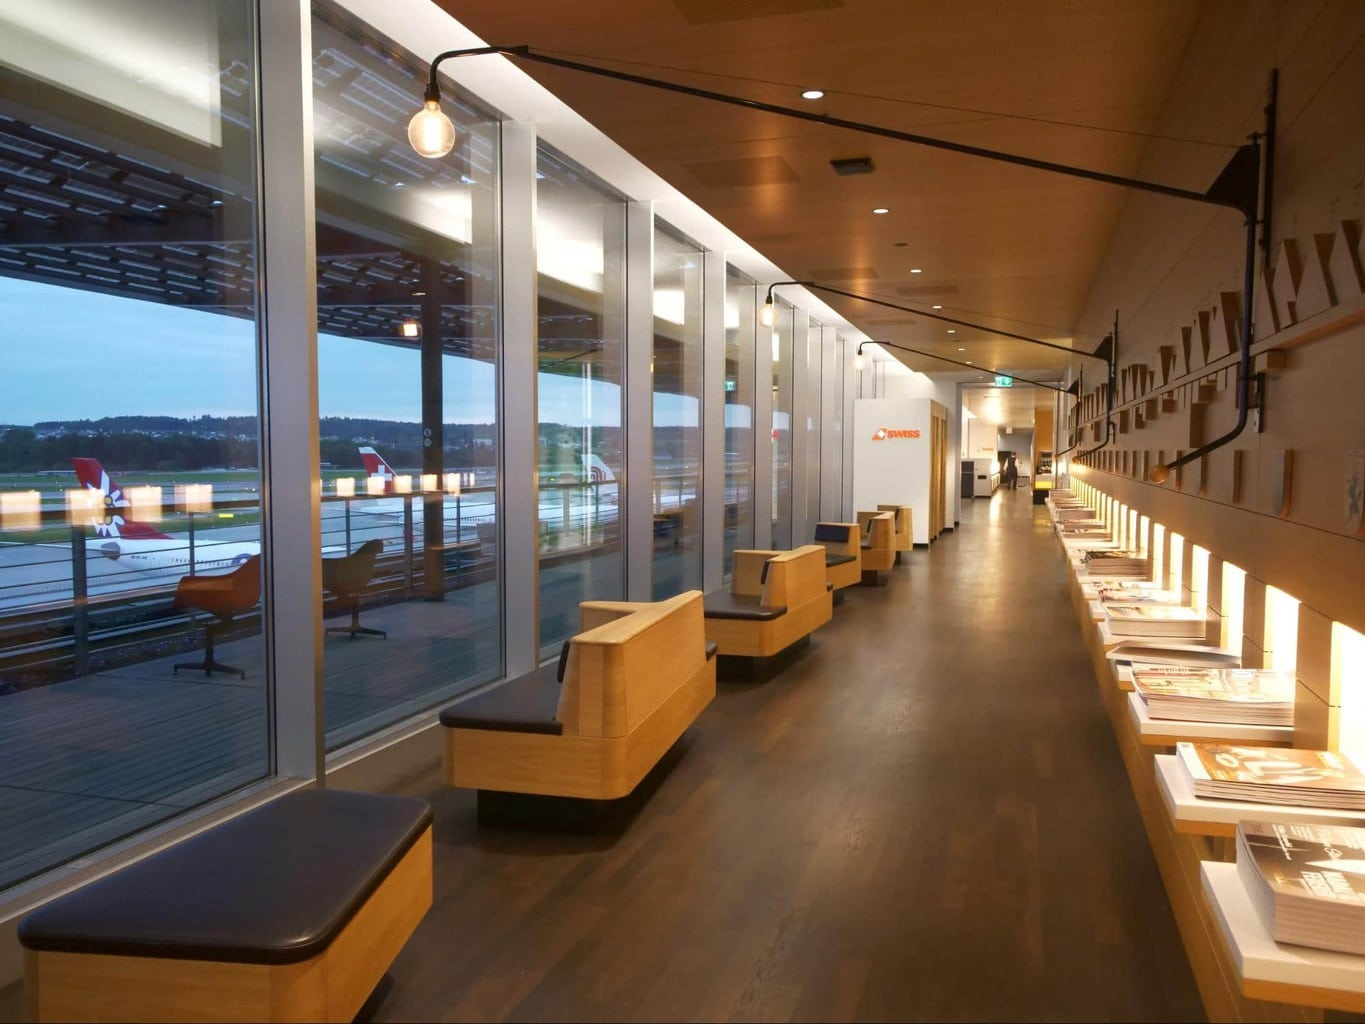 Entrance of Swiss Senator Lounge at Zurich airport with runway views